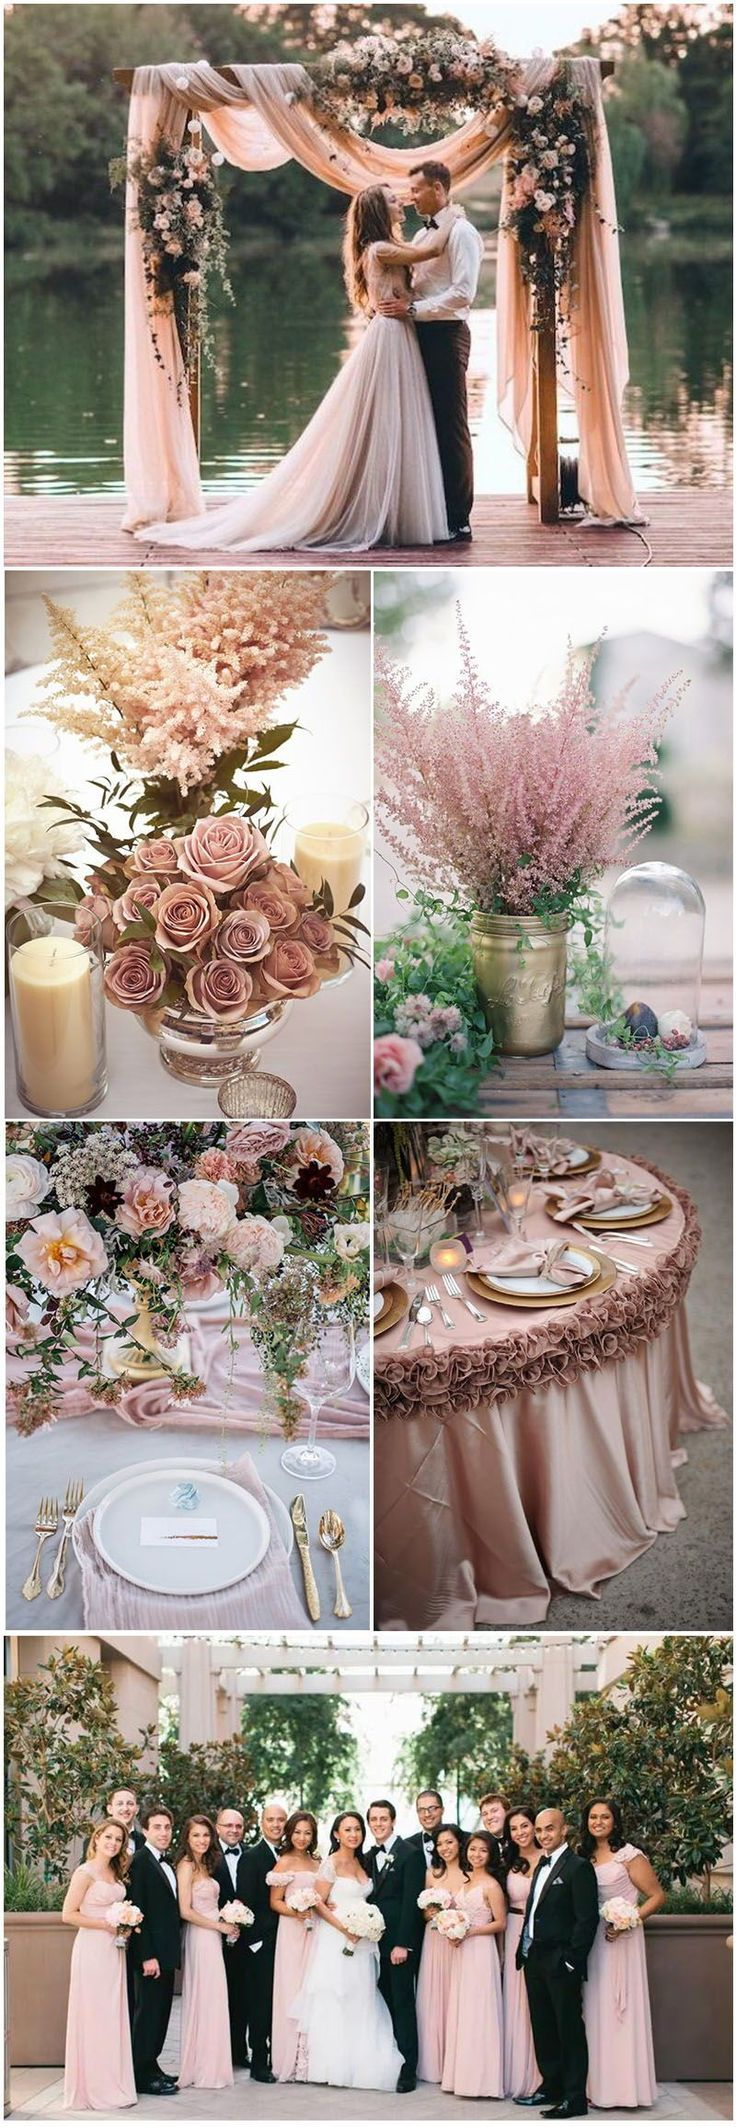 18 Romantic Dusty Rose Wedding Color Ideas for 2018 #Weddings #weddingcolors #weddingideas